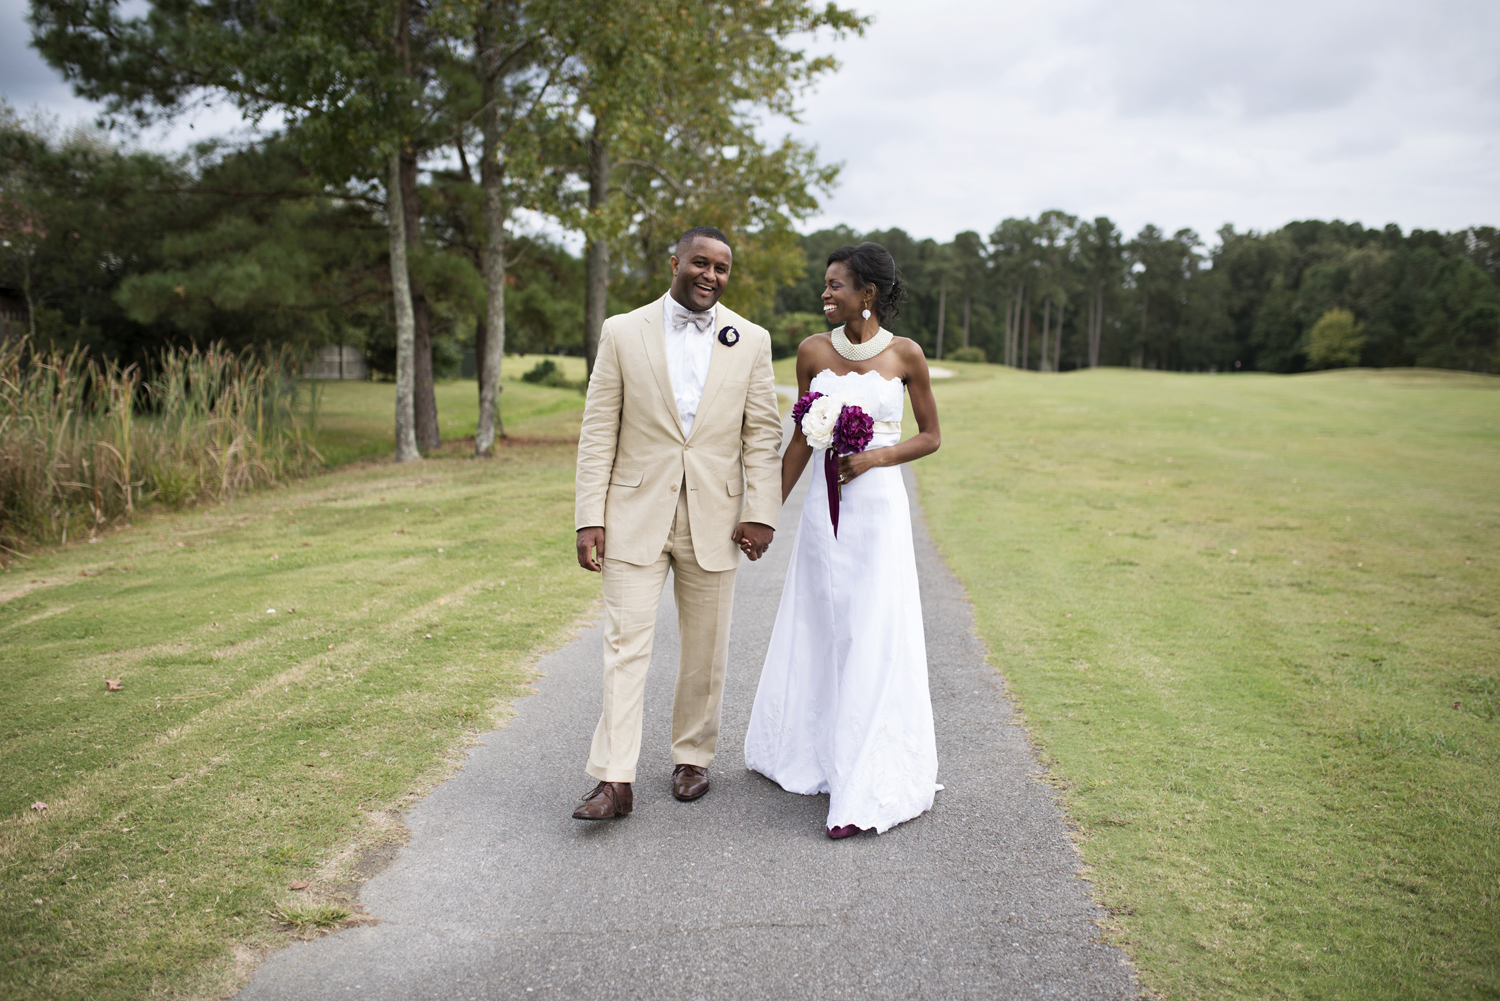 Bride and groom walk down a path together after their wedding